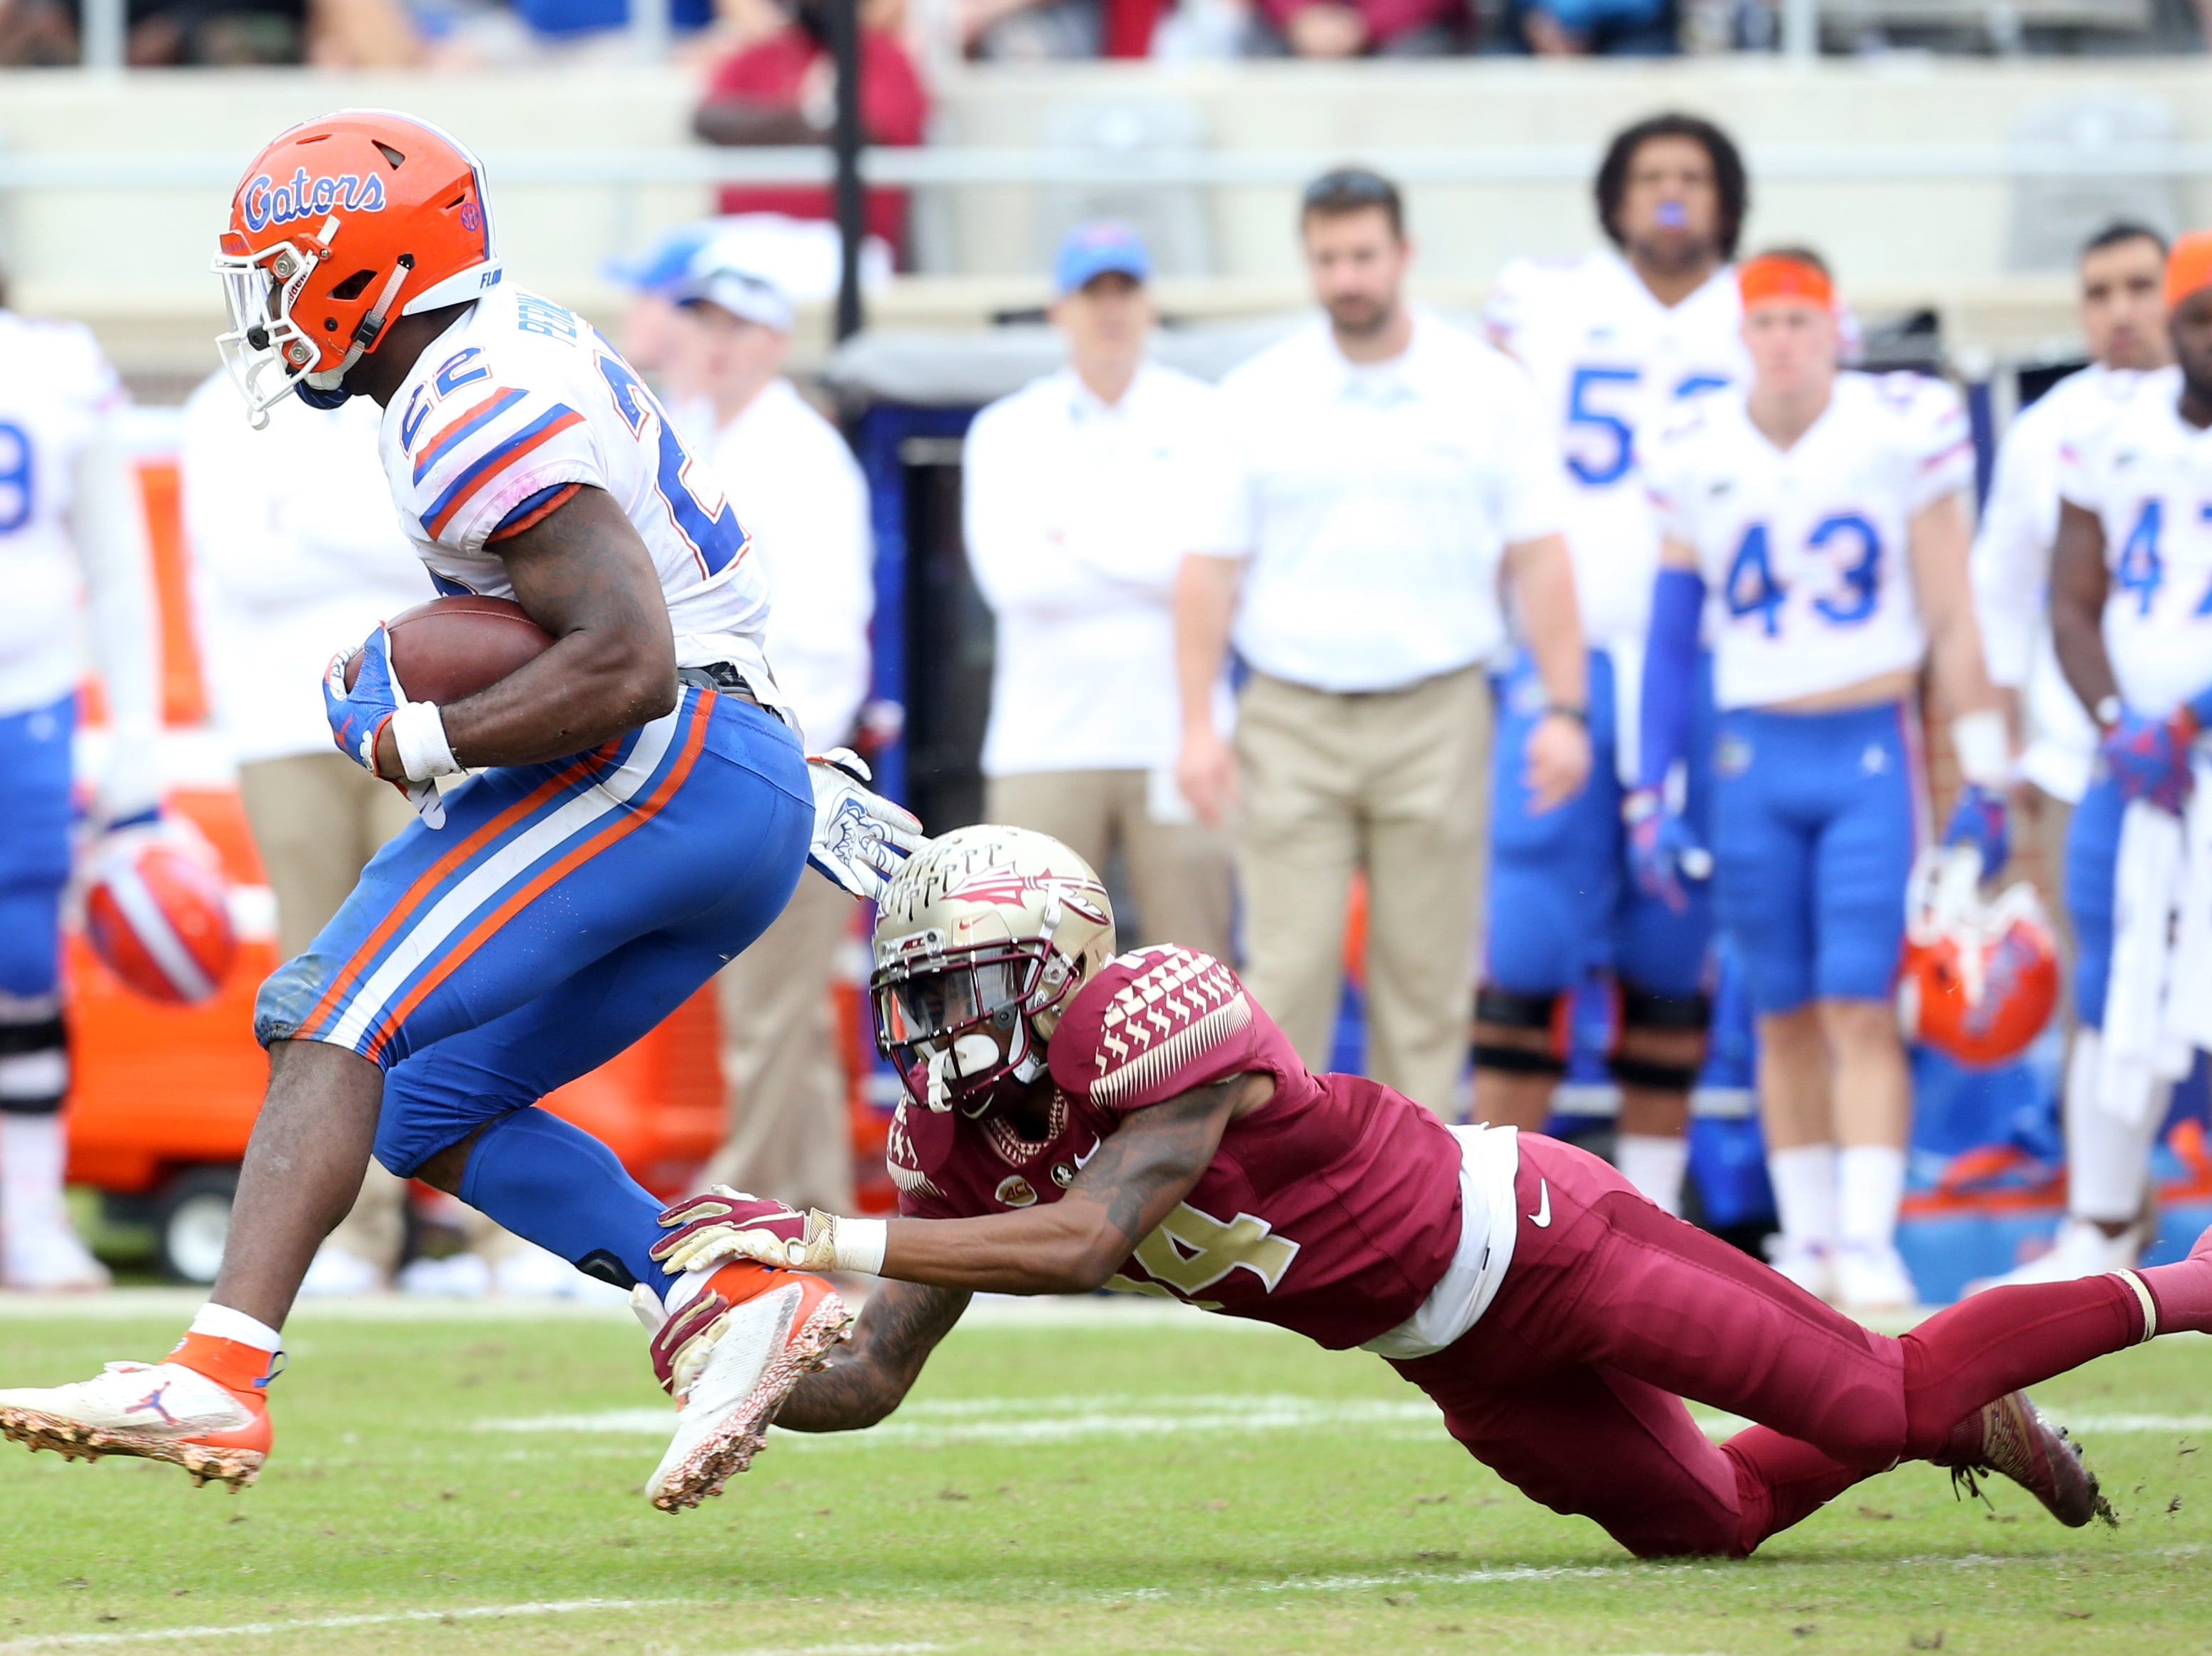 Florida Gators running back Lamical Perine (22) tries to fight off a defender as the Florida State Seminoles take on their rival the Florida Gators in college football at Doak S. Campbell Stadium, Saturday, Nov. 24, 2018.